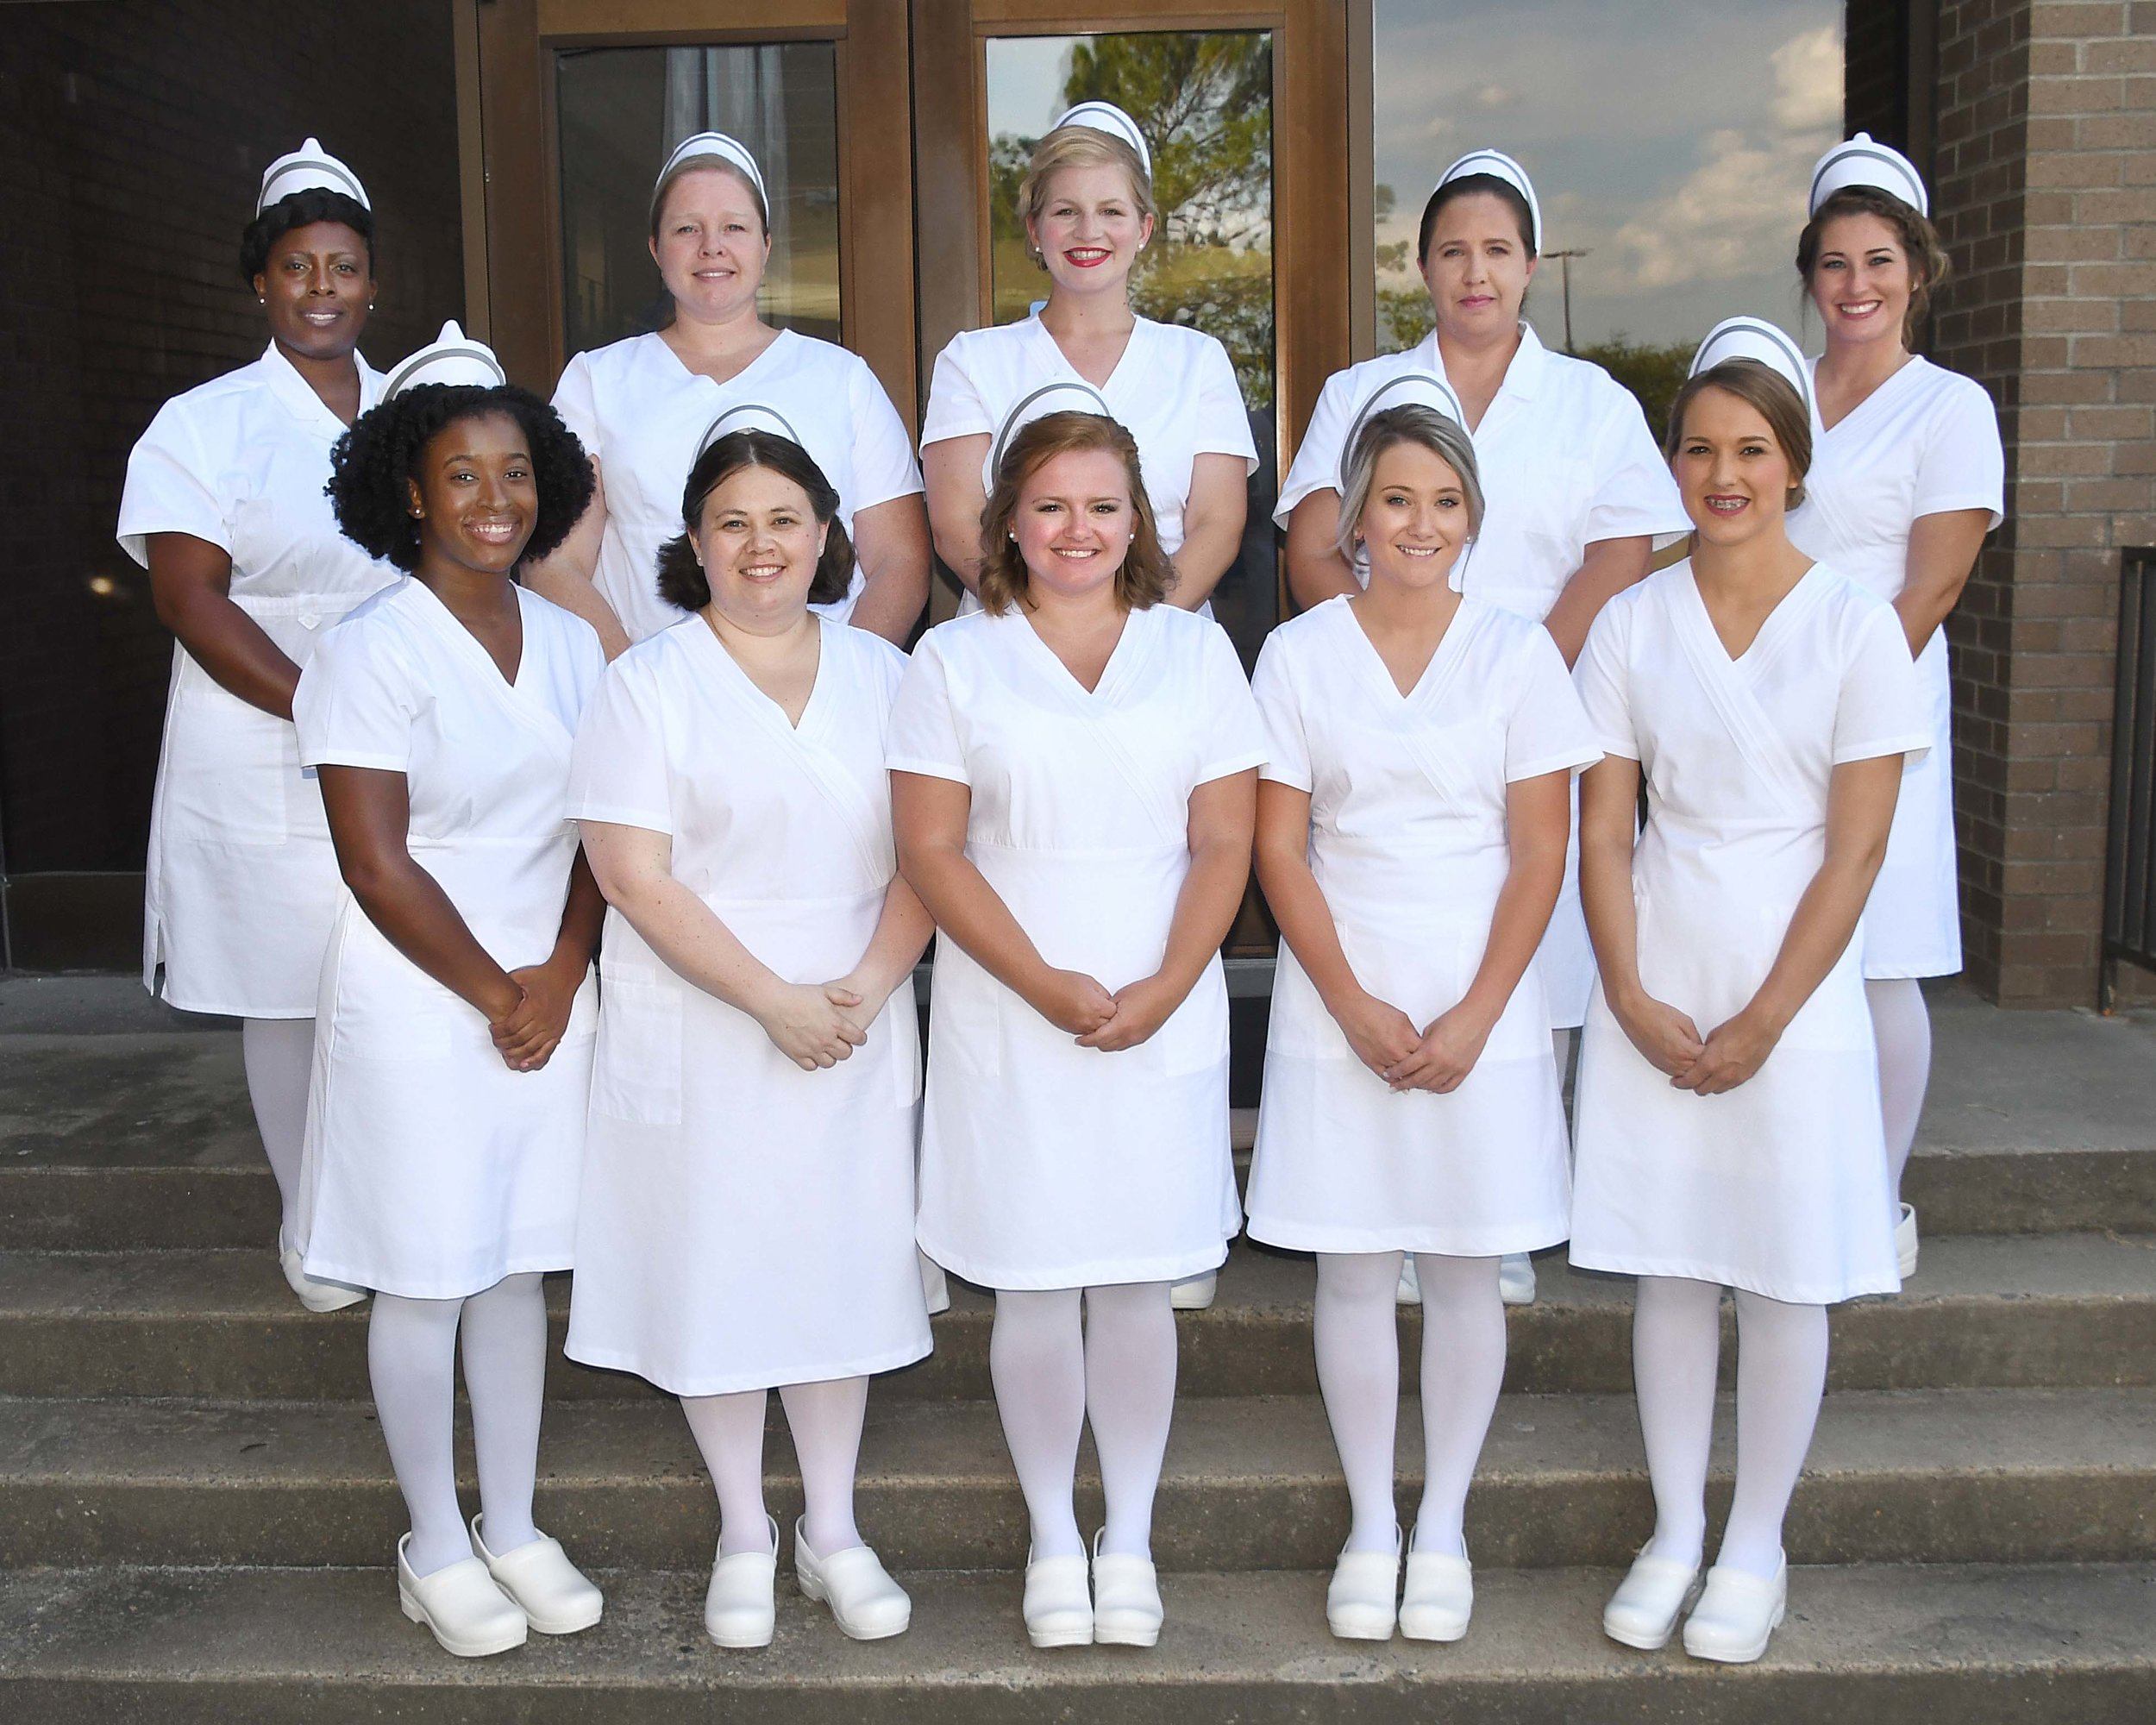 PRACTICAL NURSING CLASS OF 2019  – Pictured left to right, front row, are Aaliyah Shanice Wade of La Grange, Jennifer Naomi Estrada of Deep Run, Katherine Leigh Spence of Snow Hill, Courtney Nicole Wiggins of La Grange, and Nina Mae Byrd of La Grange; back row, Maryam Sinoria Steele of Goldsboro, Adrienne Lane Rogers of Kinston, Lauren Renée Bio of Pikeville, Karen Melinda Thomas of Trenton, and Crystal Paige Sandoval of Kinston.